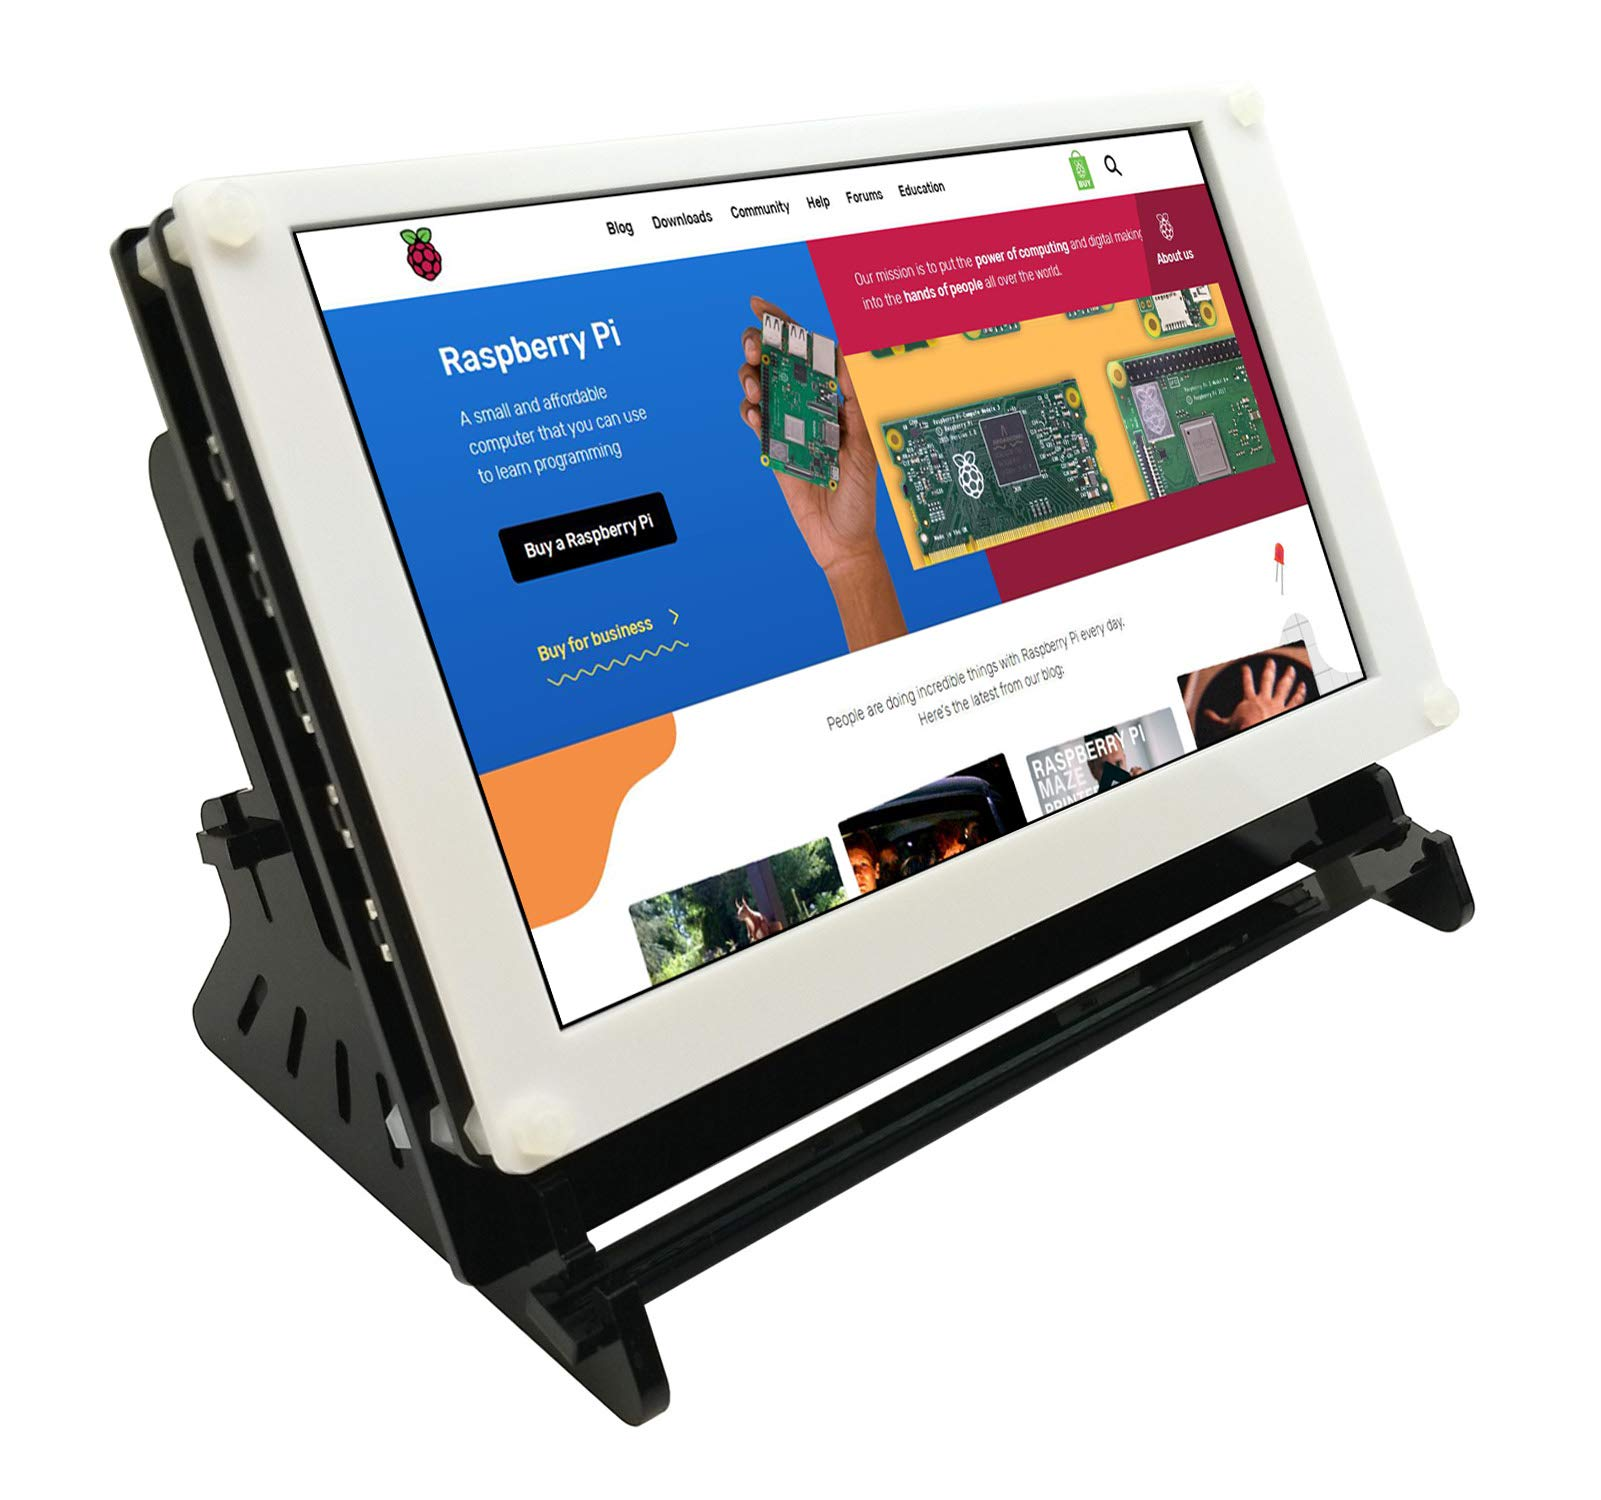 Eleduino Raspberry Pi 7 Inch 1024x600 IPS Capacitive Touchscreen Display LCD Hdmi Input USB Powered With Case